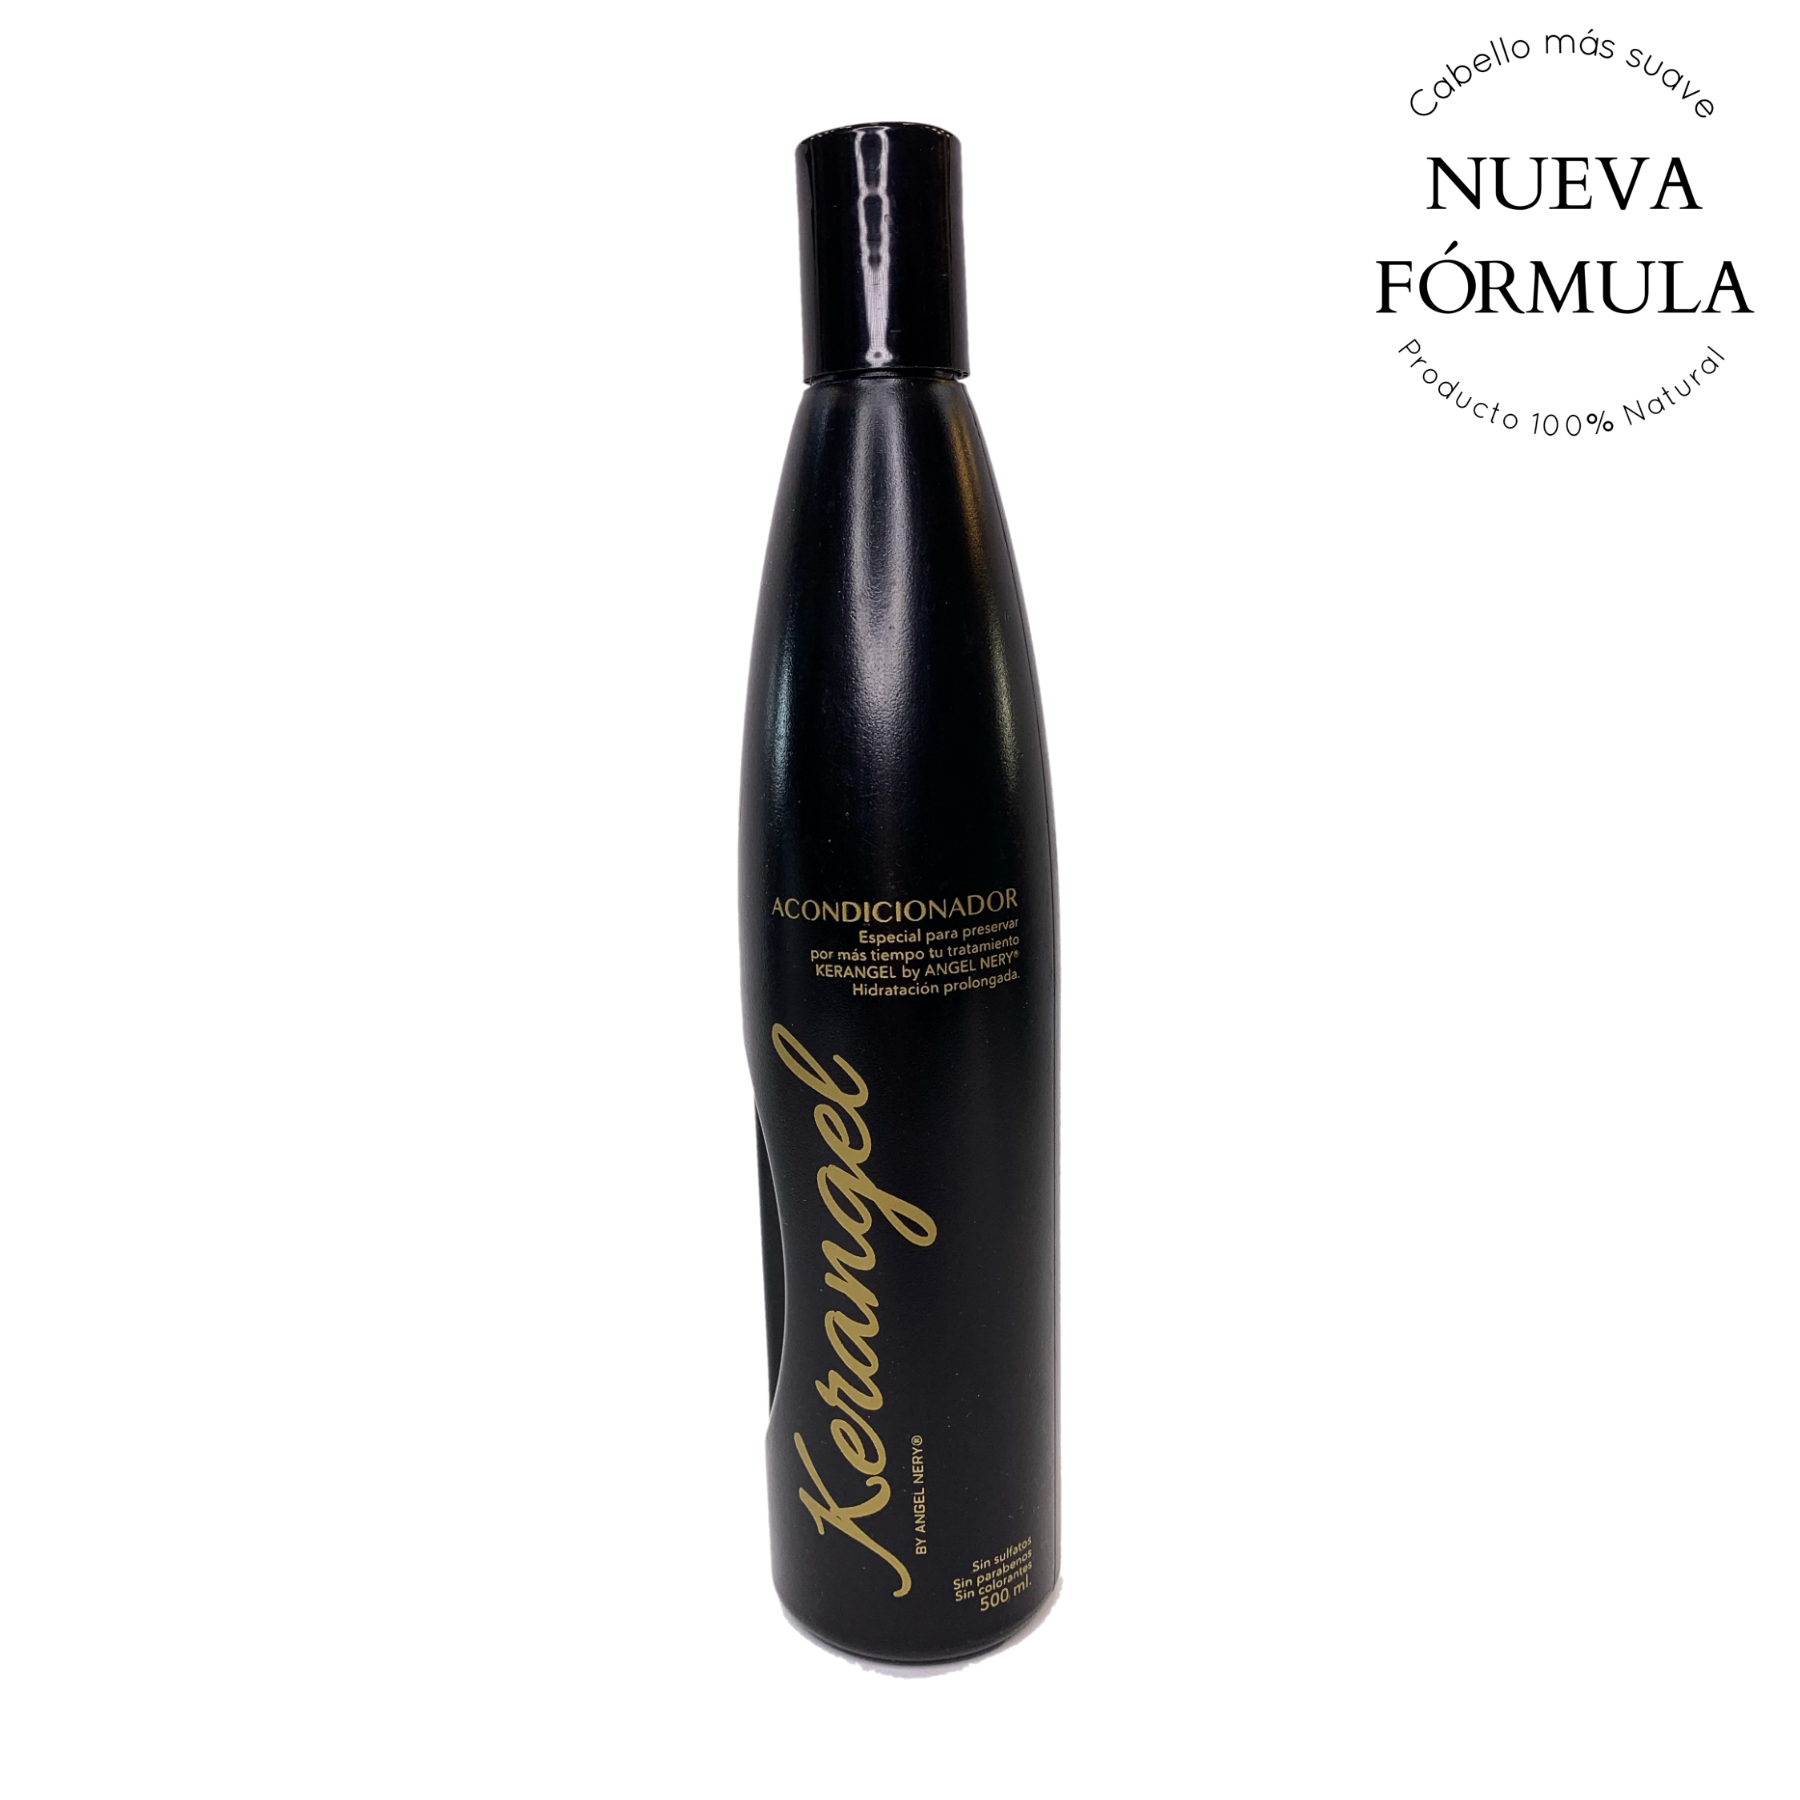 angelnery.com Acondicionador 500ml